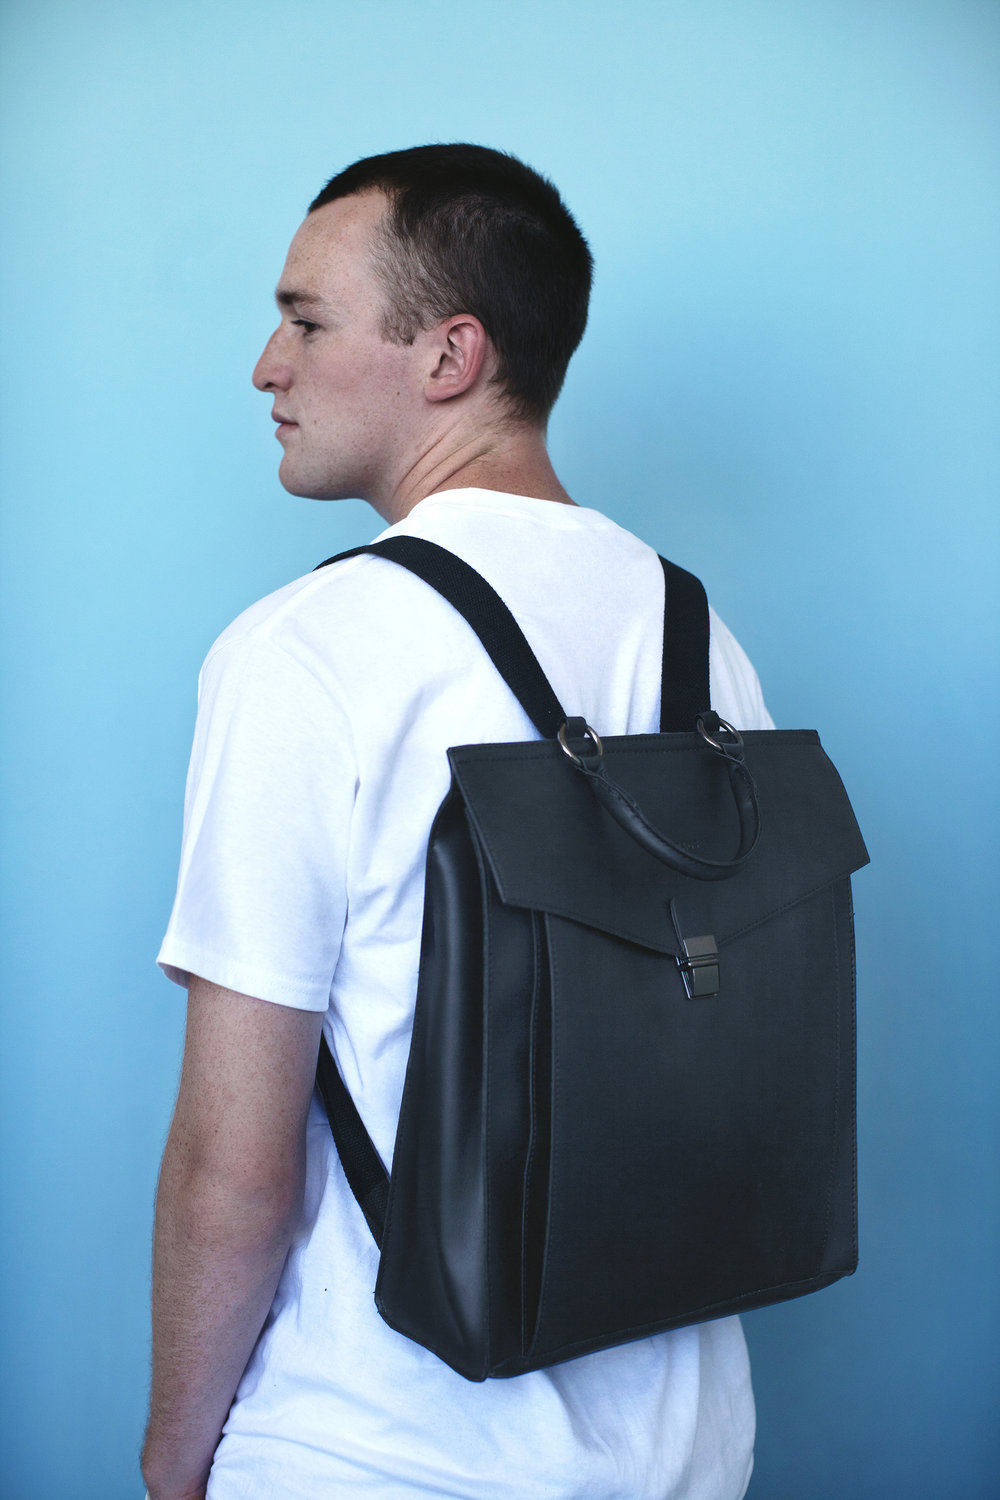 _MG_7135_CUT-light backpack.jpg